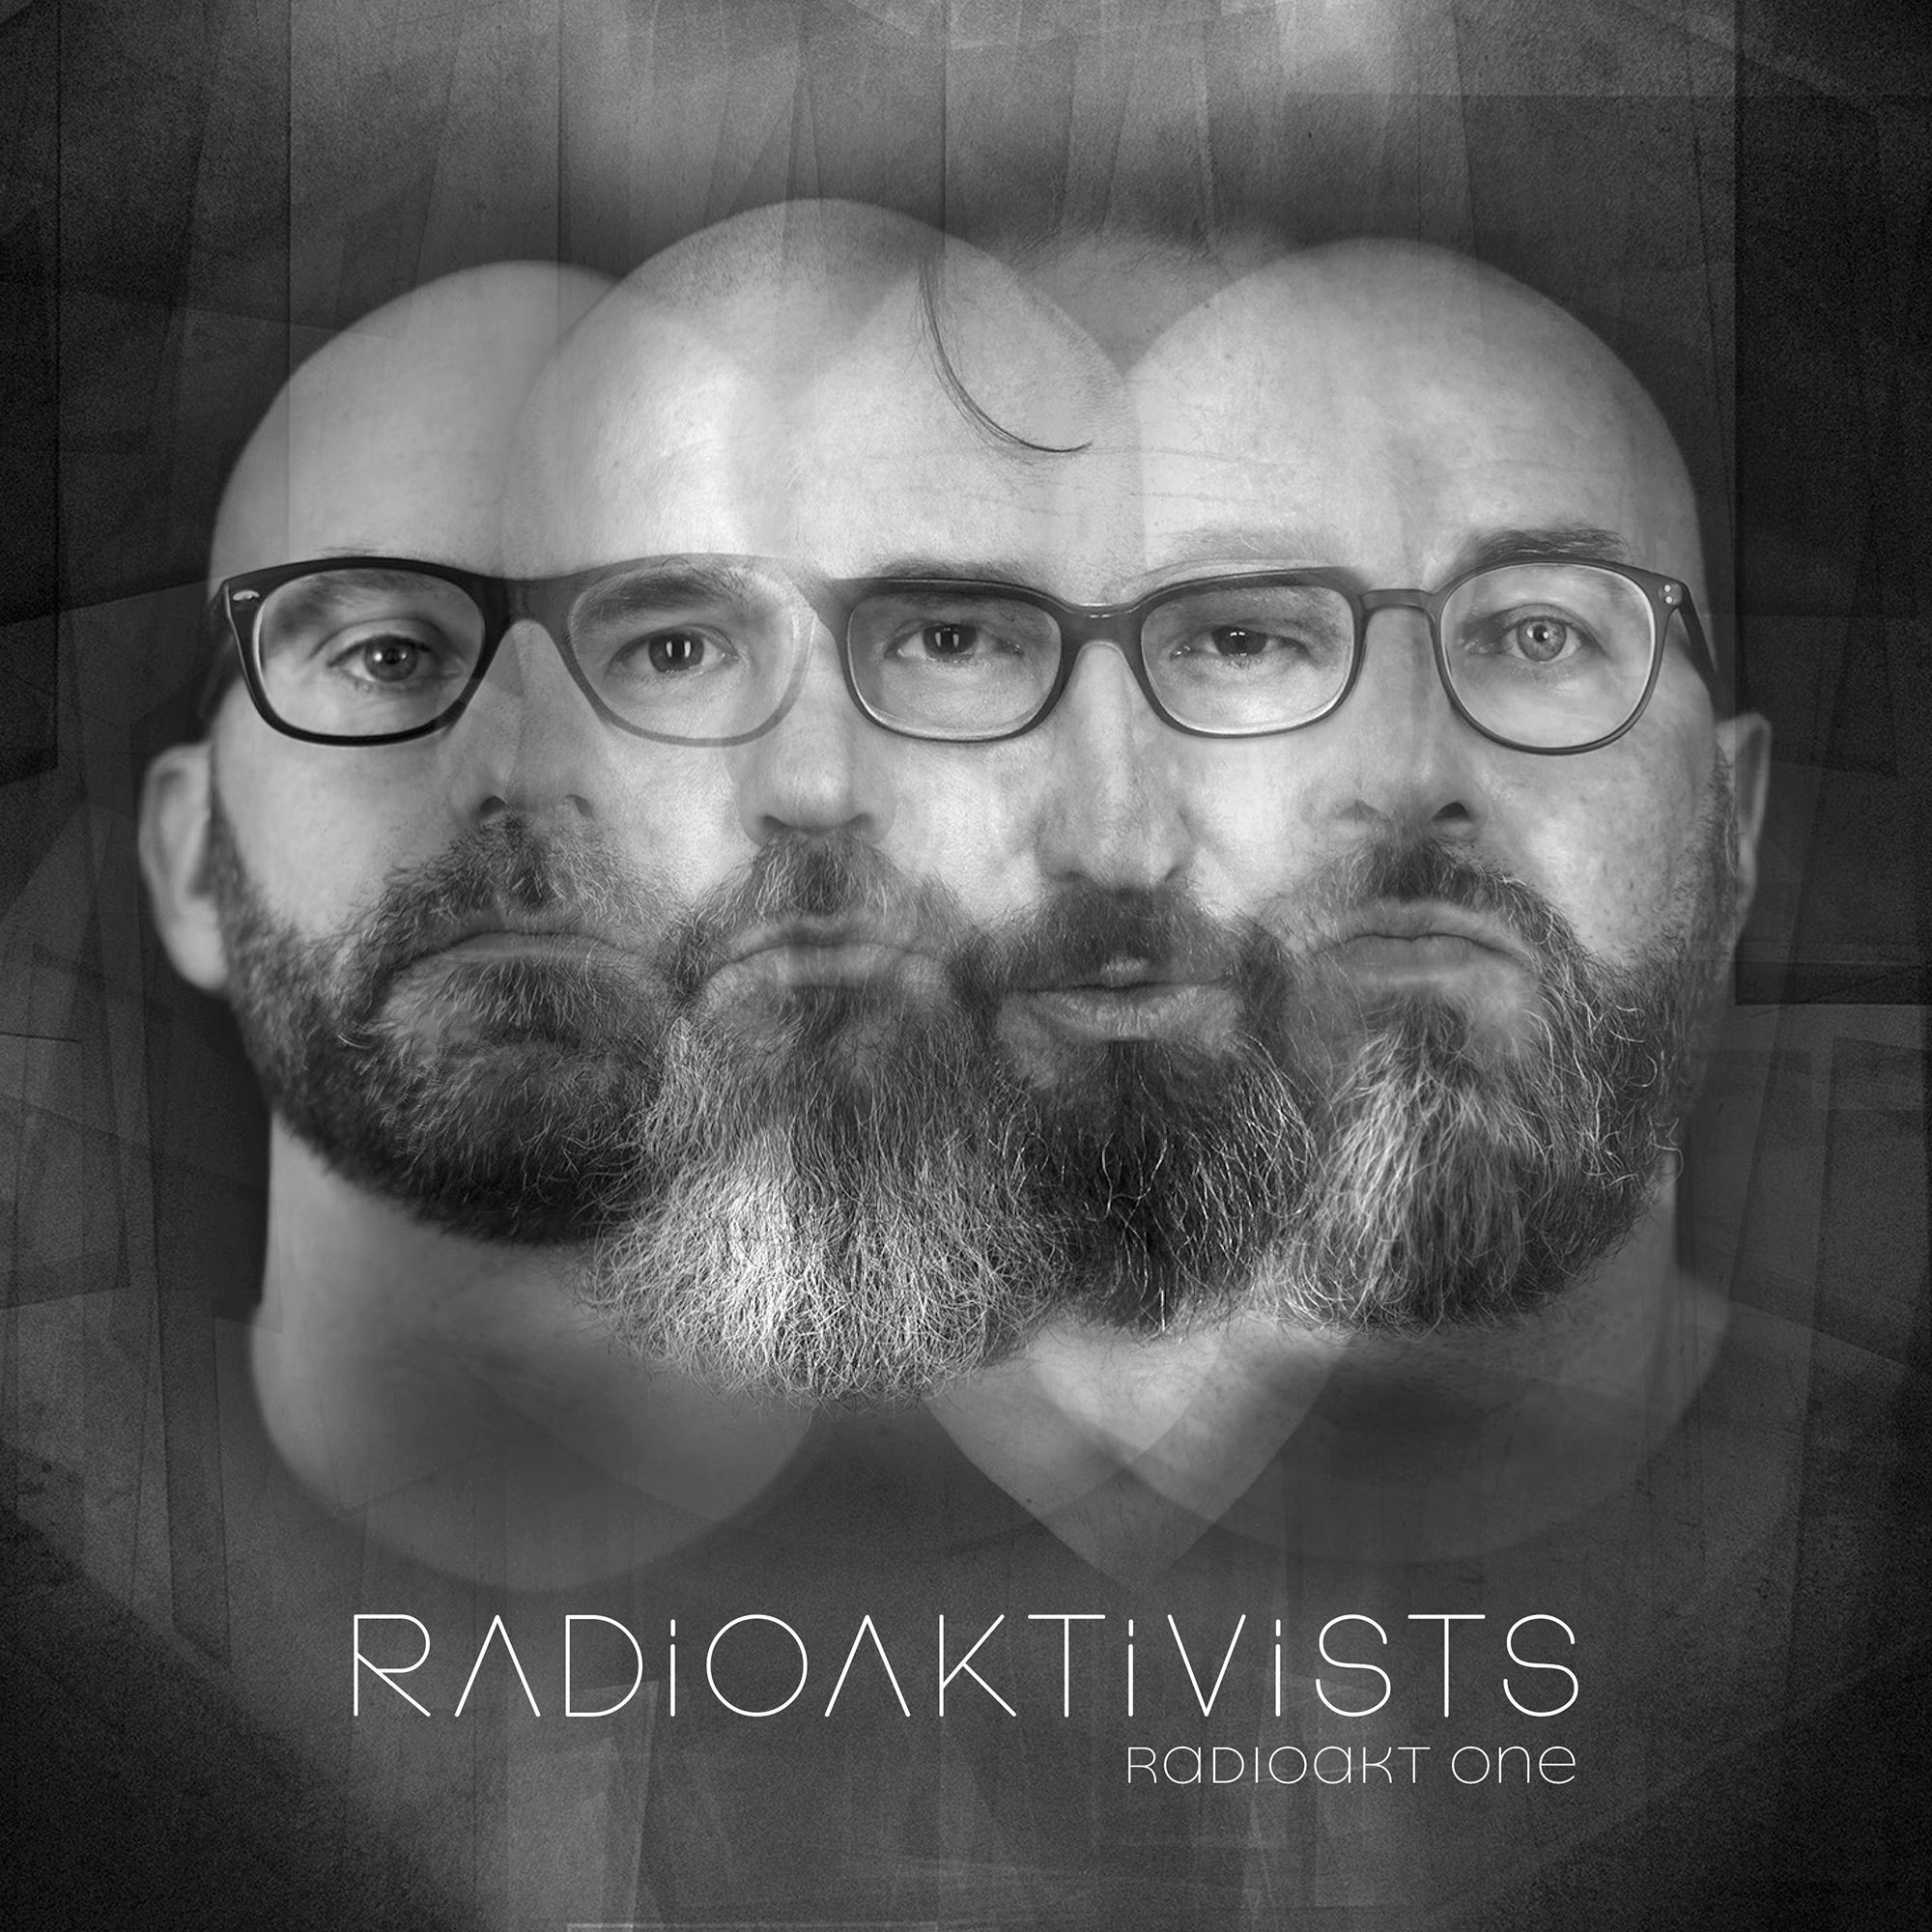 Radioaktivists - Radioakt One - CD